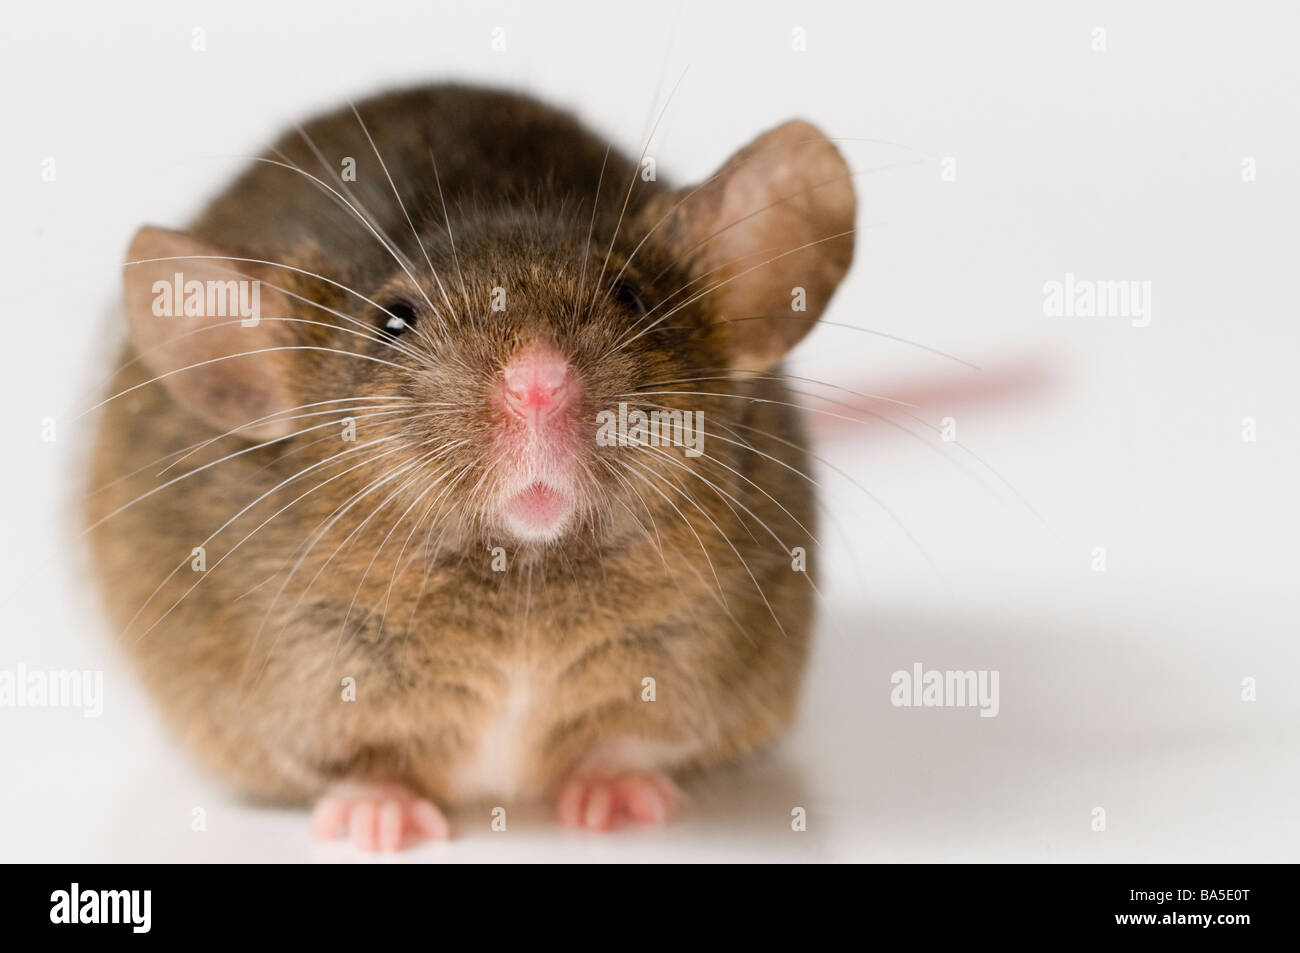 House Mouse Mus musculus Stock Photo